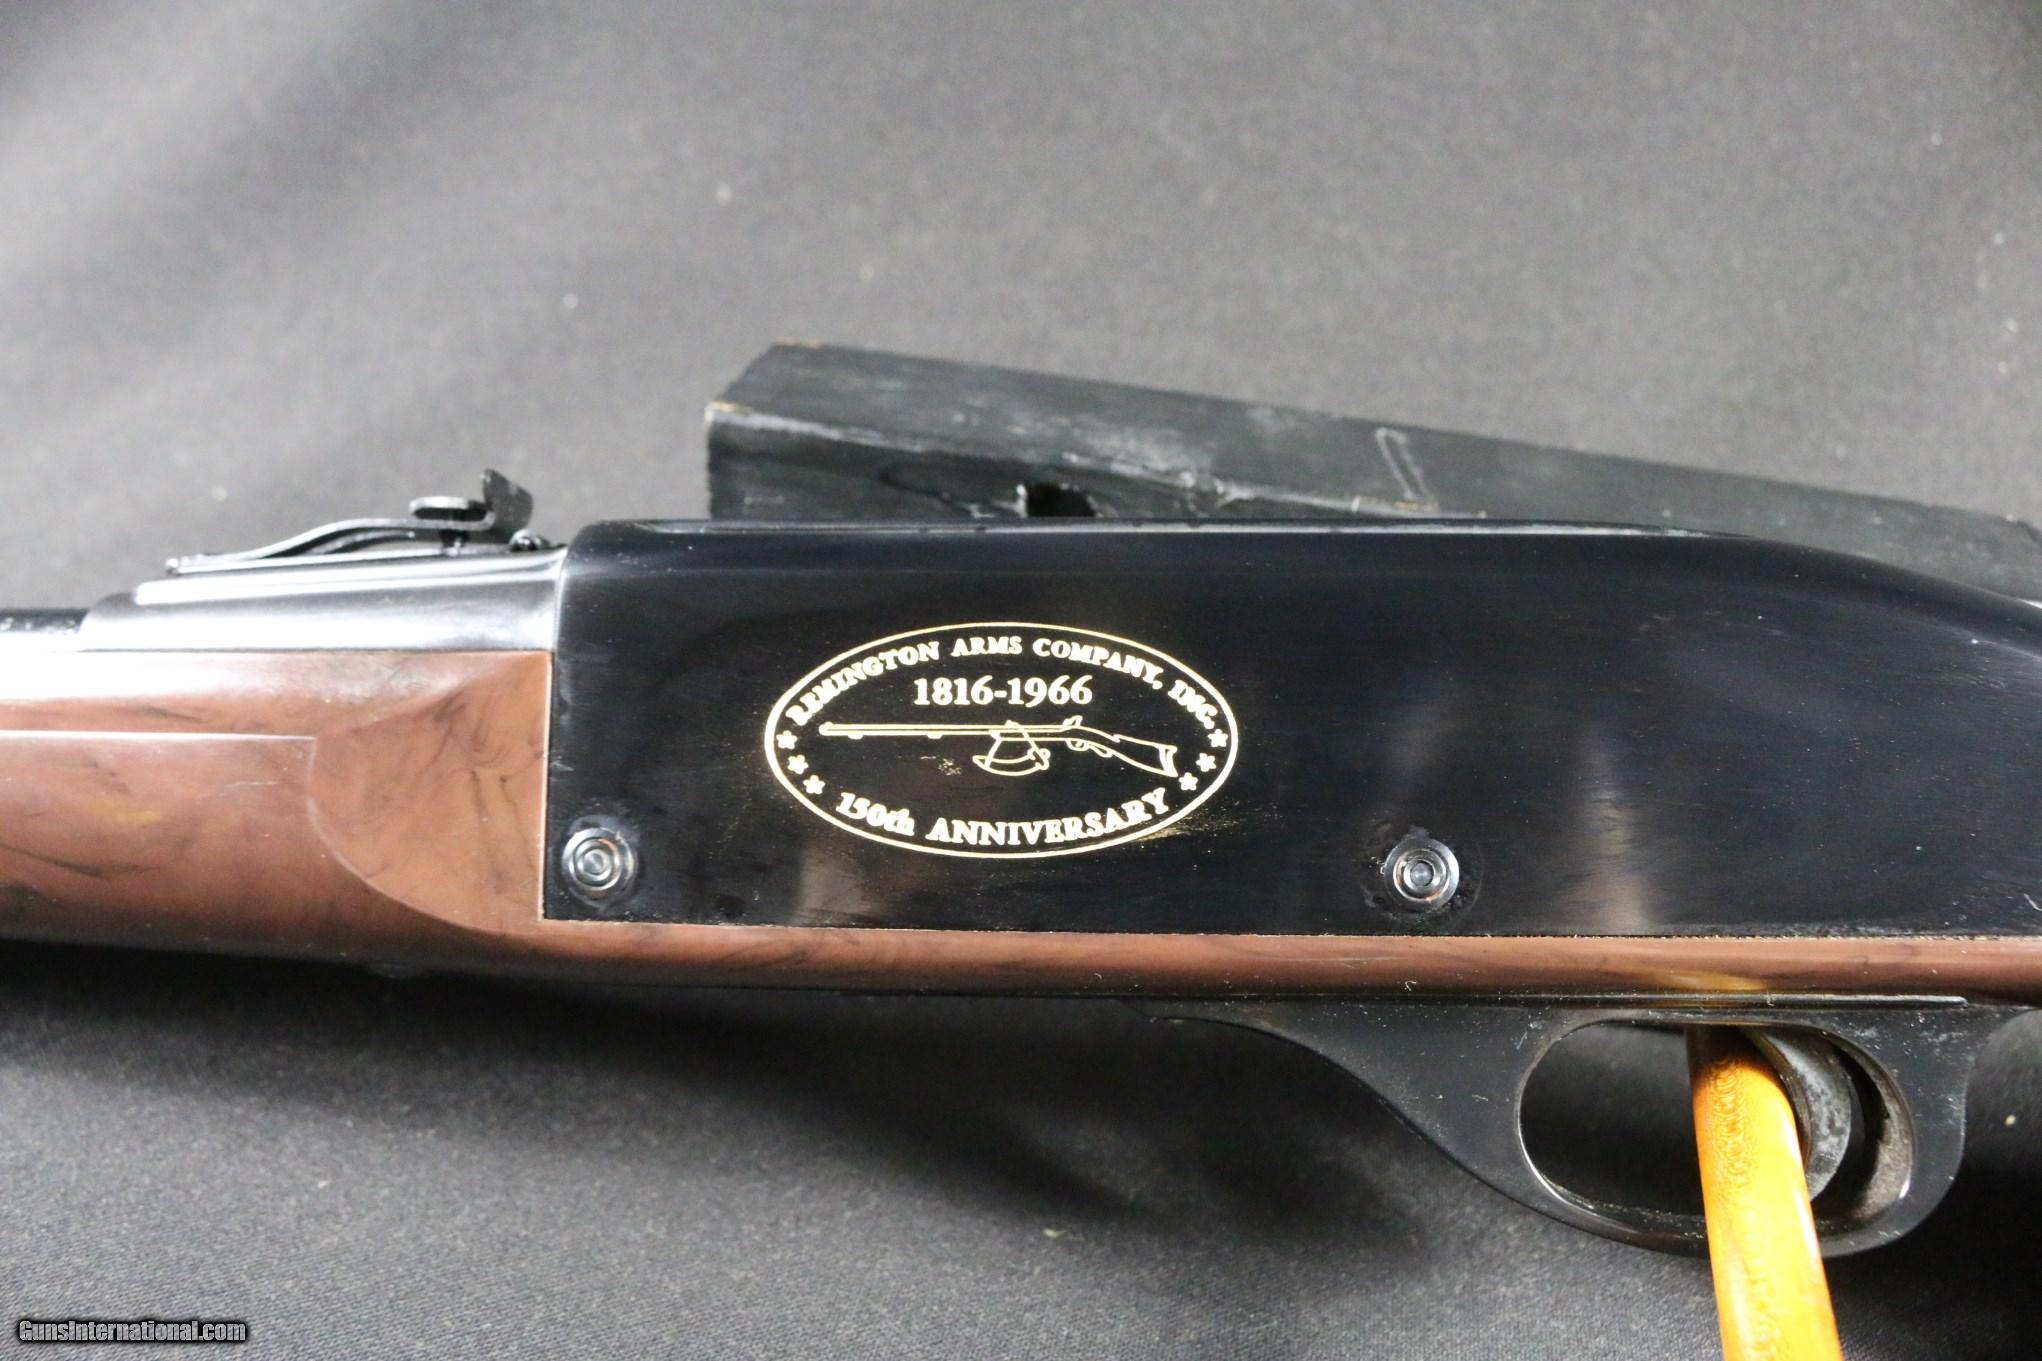 dating a remington nylon 66 Join date: jul 2010  remington nylon 66 i have an old 22 rifle by remington model nylon 66 whole or most of the barrel is enclosed in the nylon stock,.